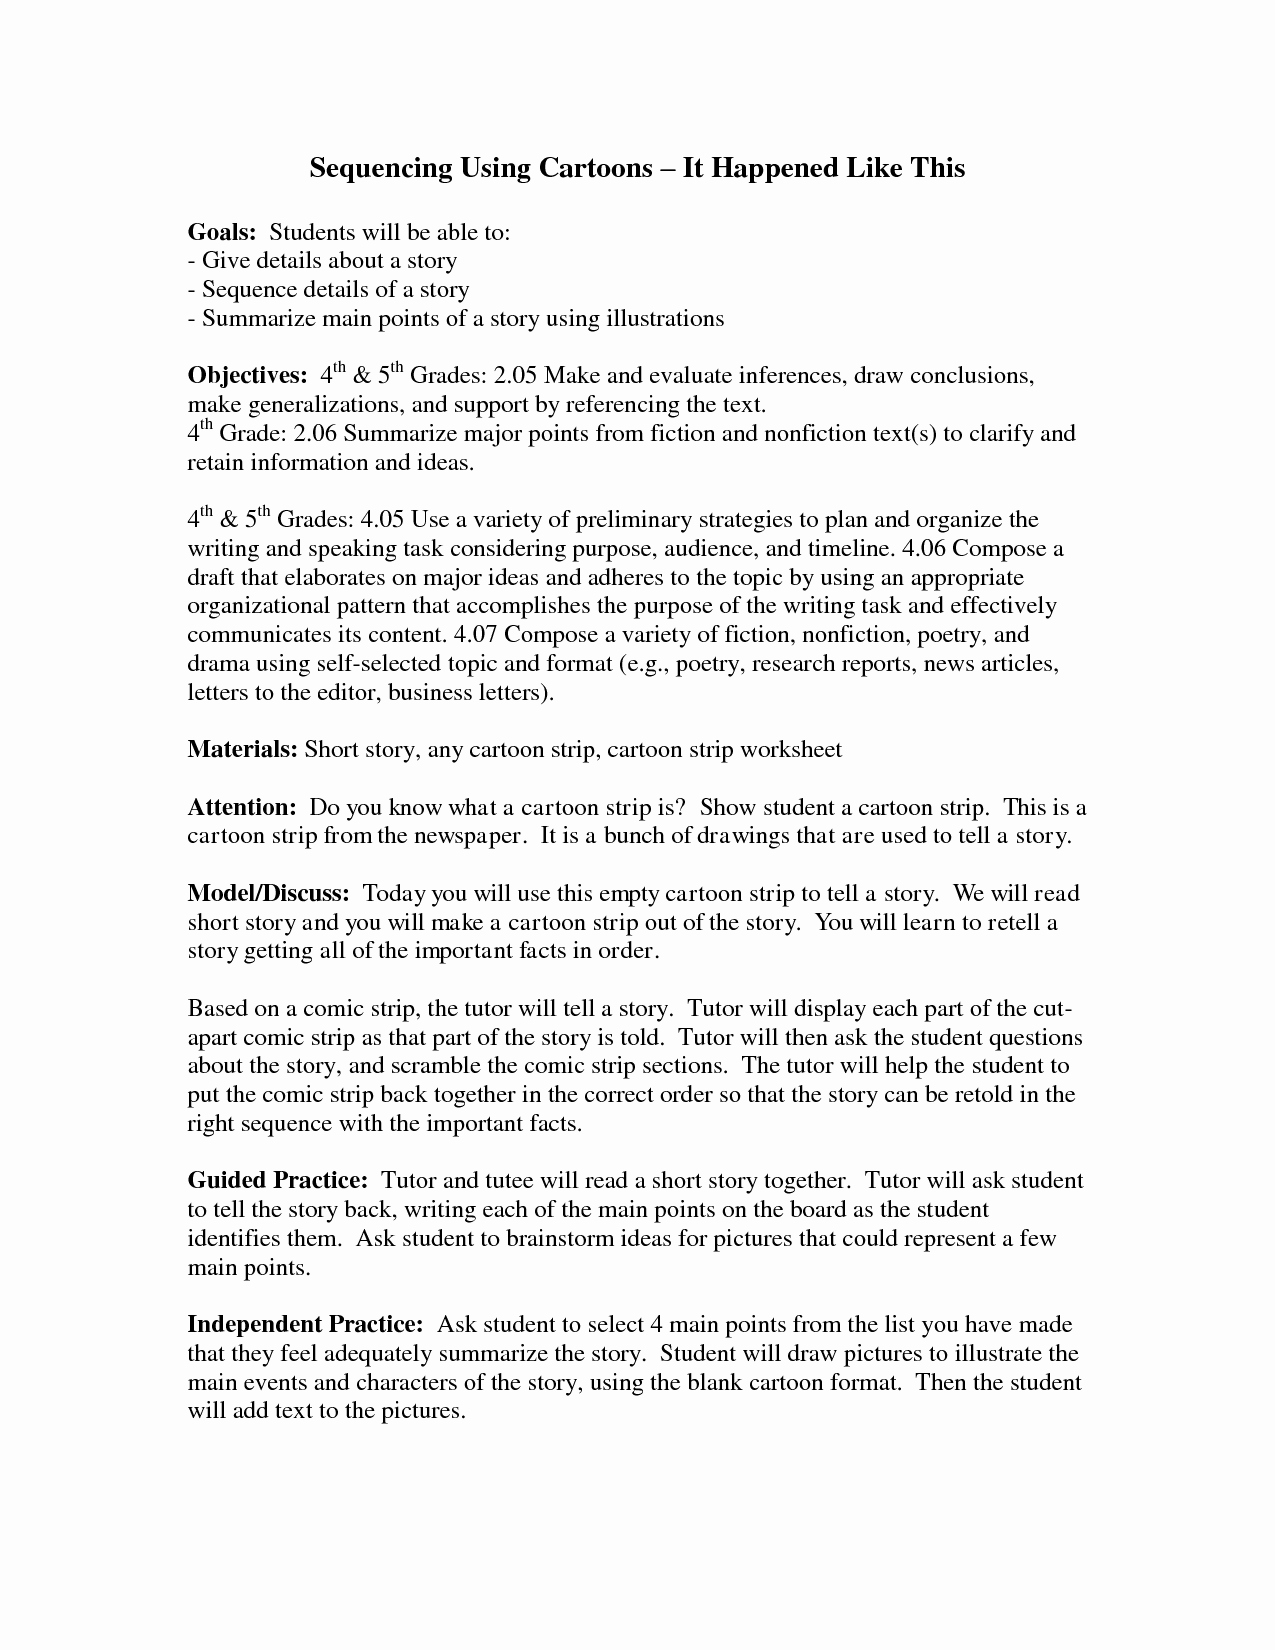 Sequence Worksheets 5th Grade Best Of 14 Best Of Story events Worksheets Story